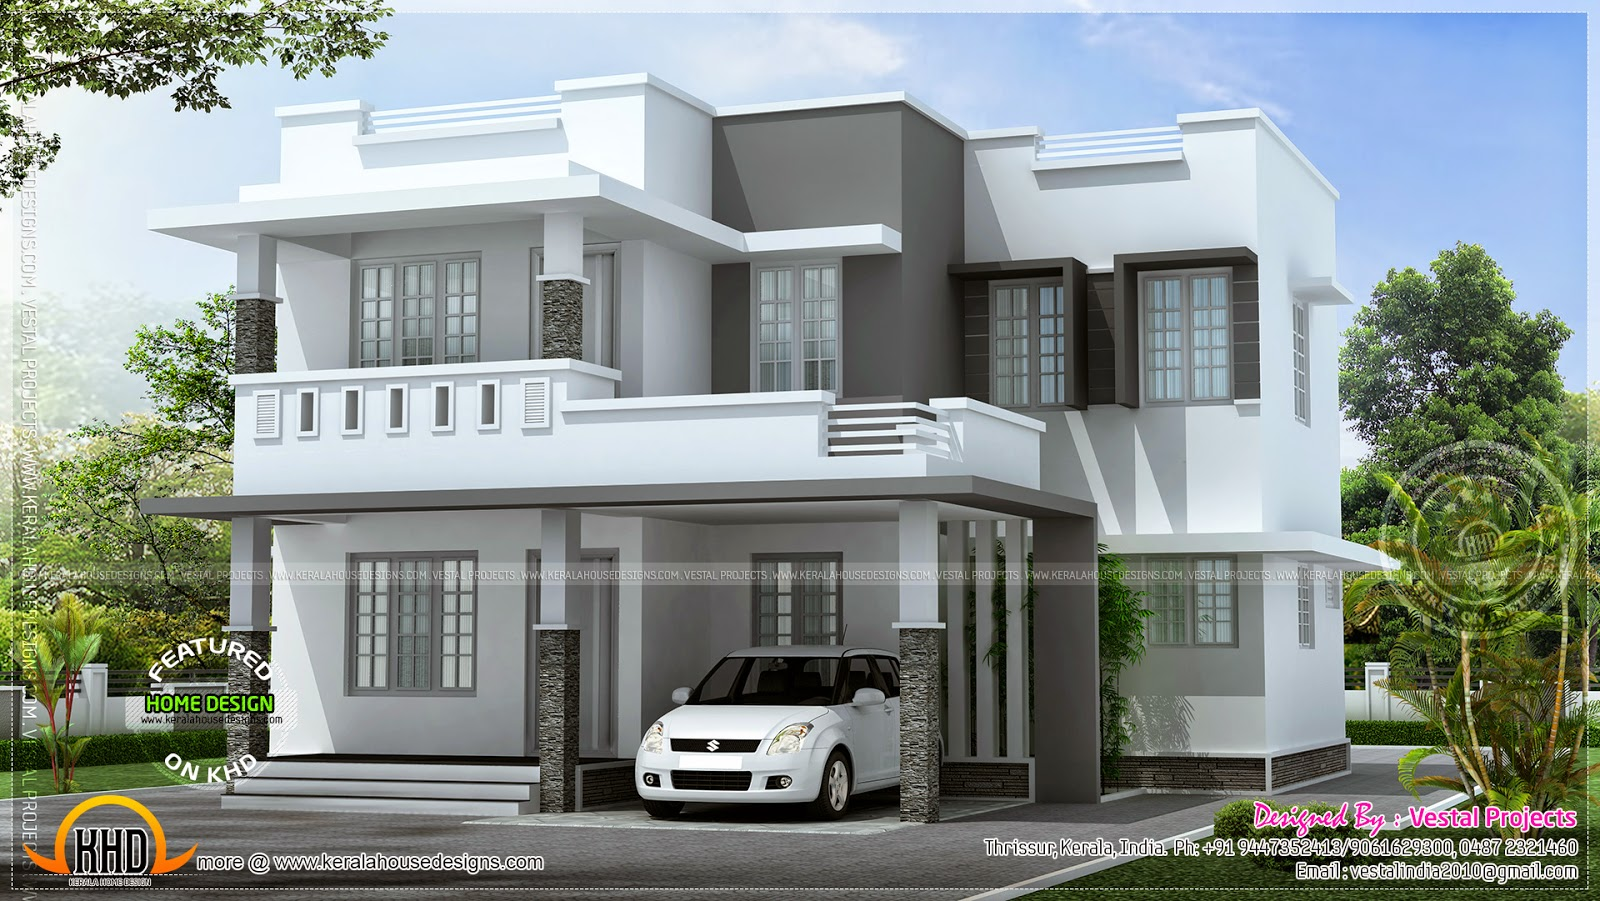 Simple beautiful house kerala home design and floor plans for Beautiful home designs photos